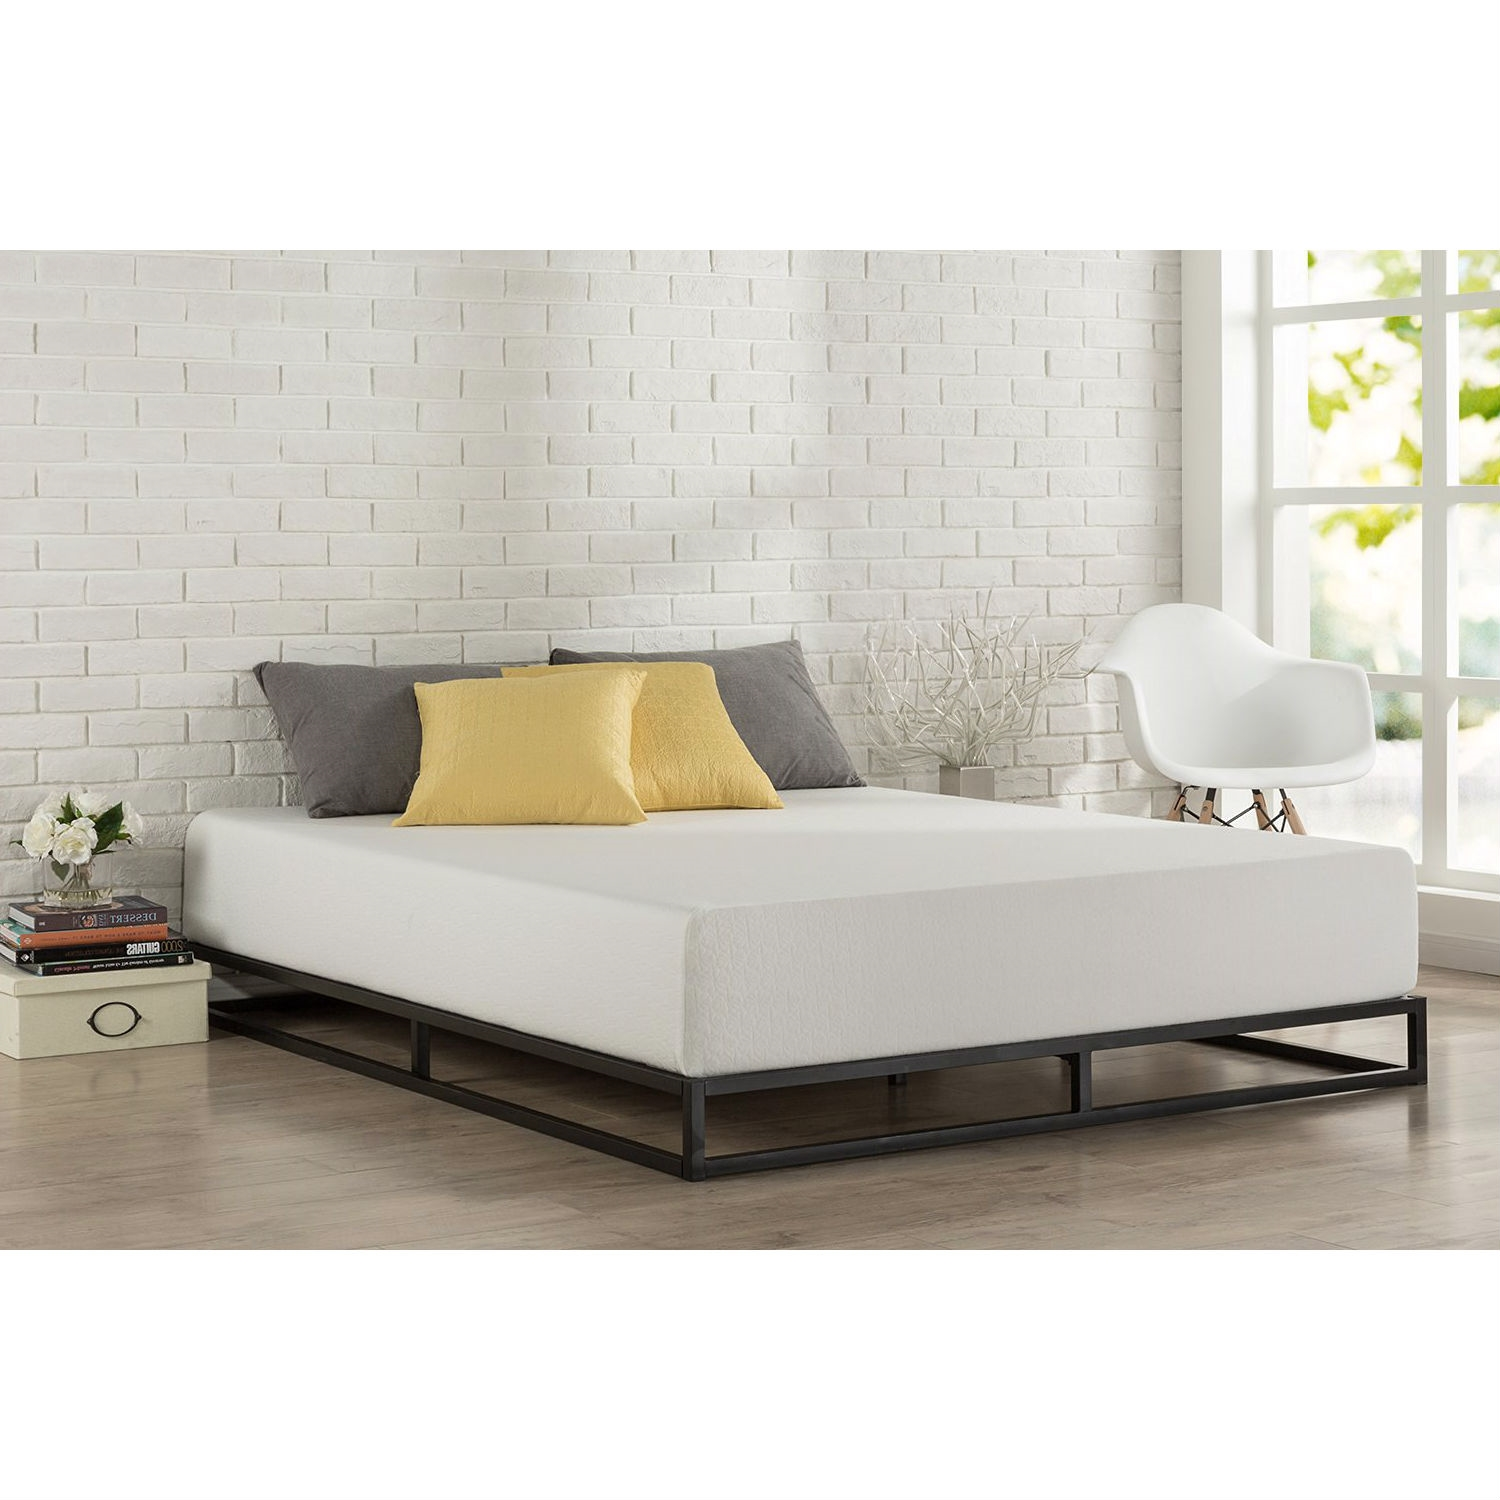 low platform beds with storage. Low Profile Full Size Bed Platform Beds With Storage -